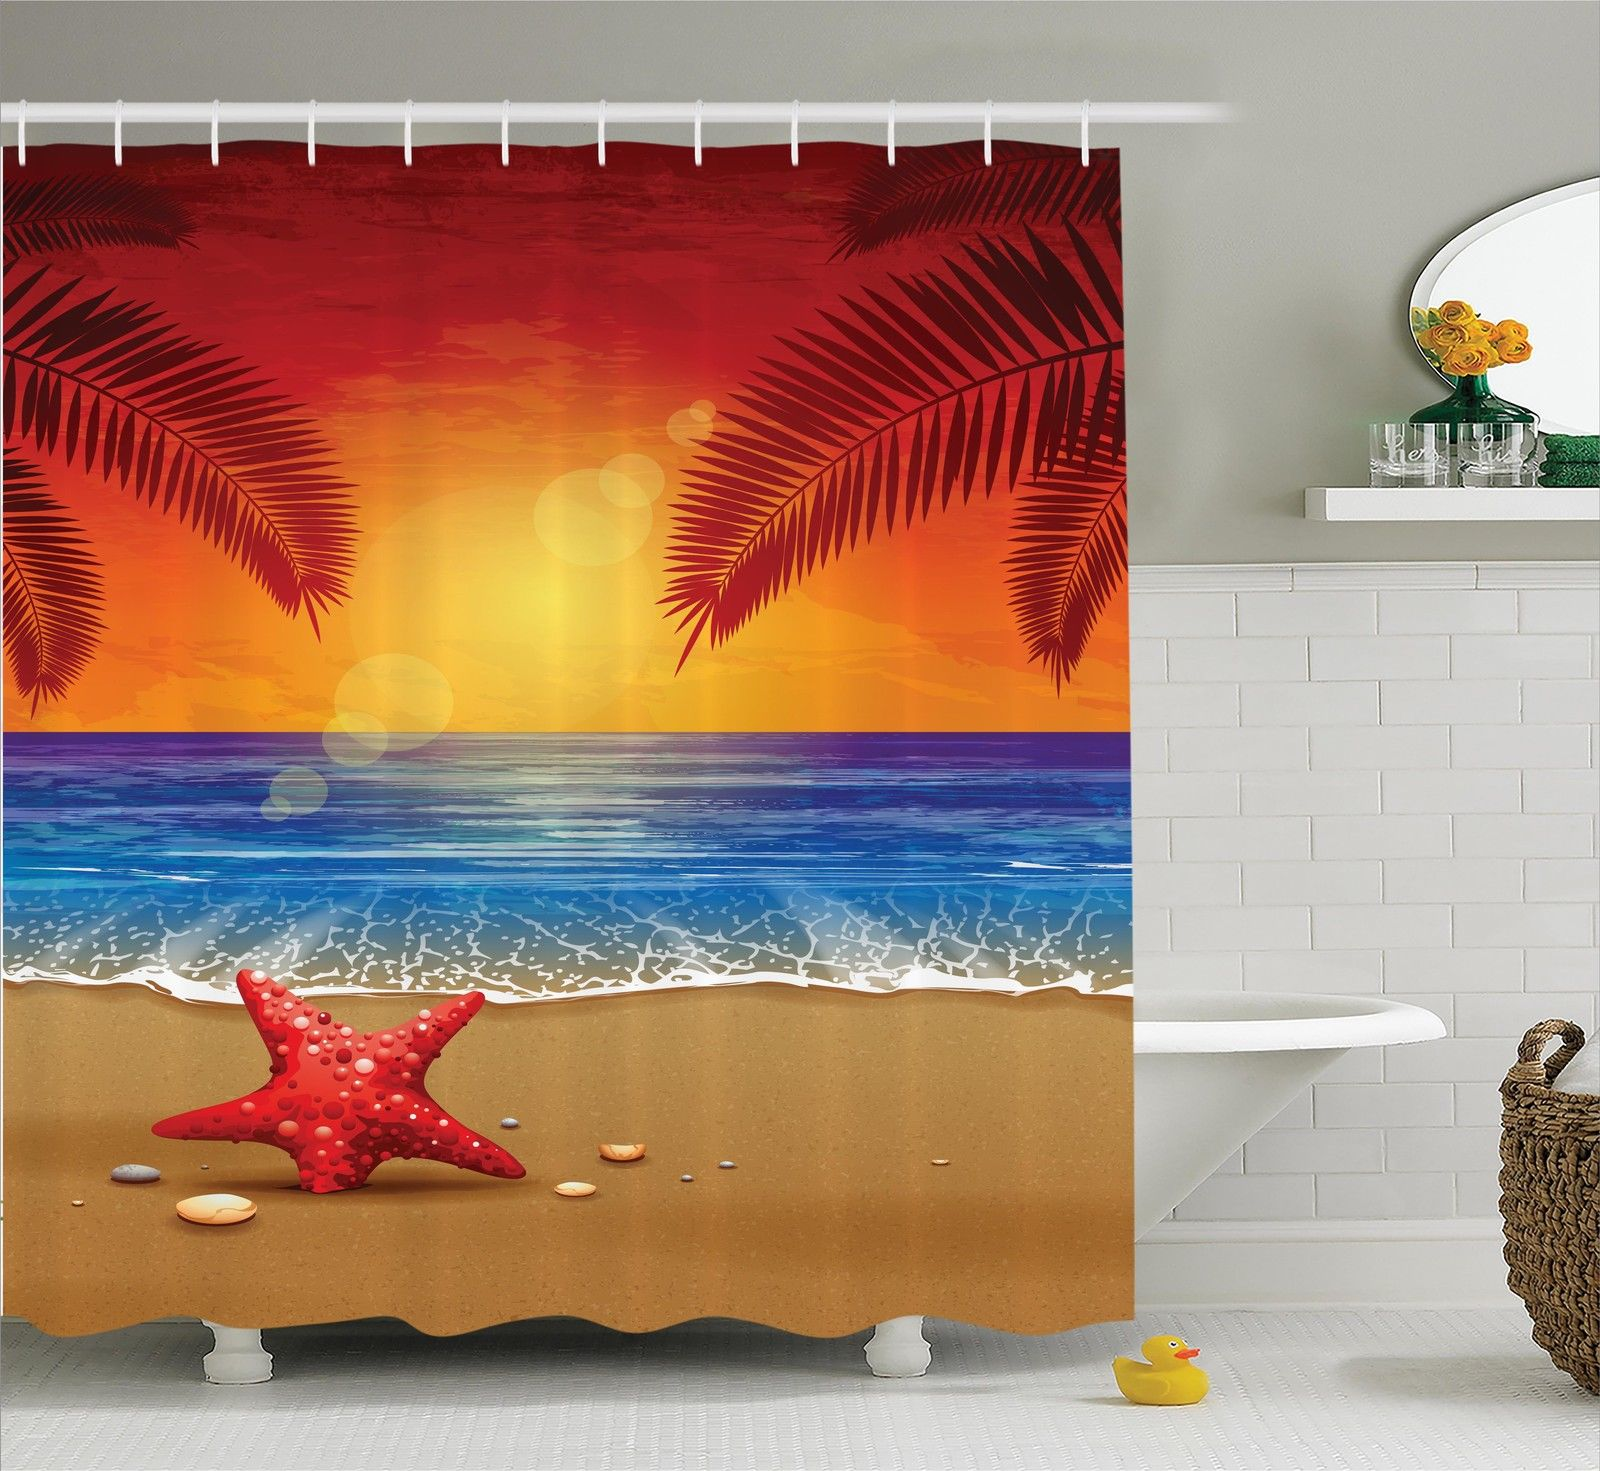 Tropical Decor Shower Curtain Set, Sunset Cartoon Illustration Beach Summer Starfish Palm Tree Ocean Fantasy Art, Bathroom Accessories, 69W X 70L Inches, By Ambesonne